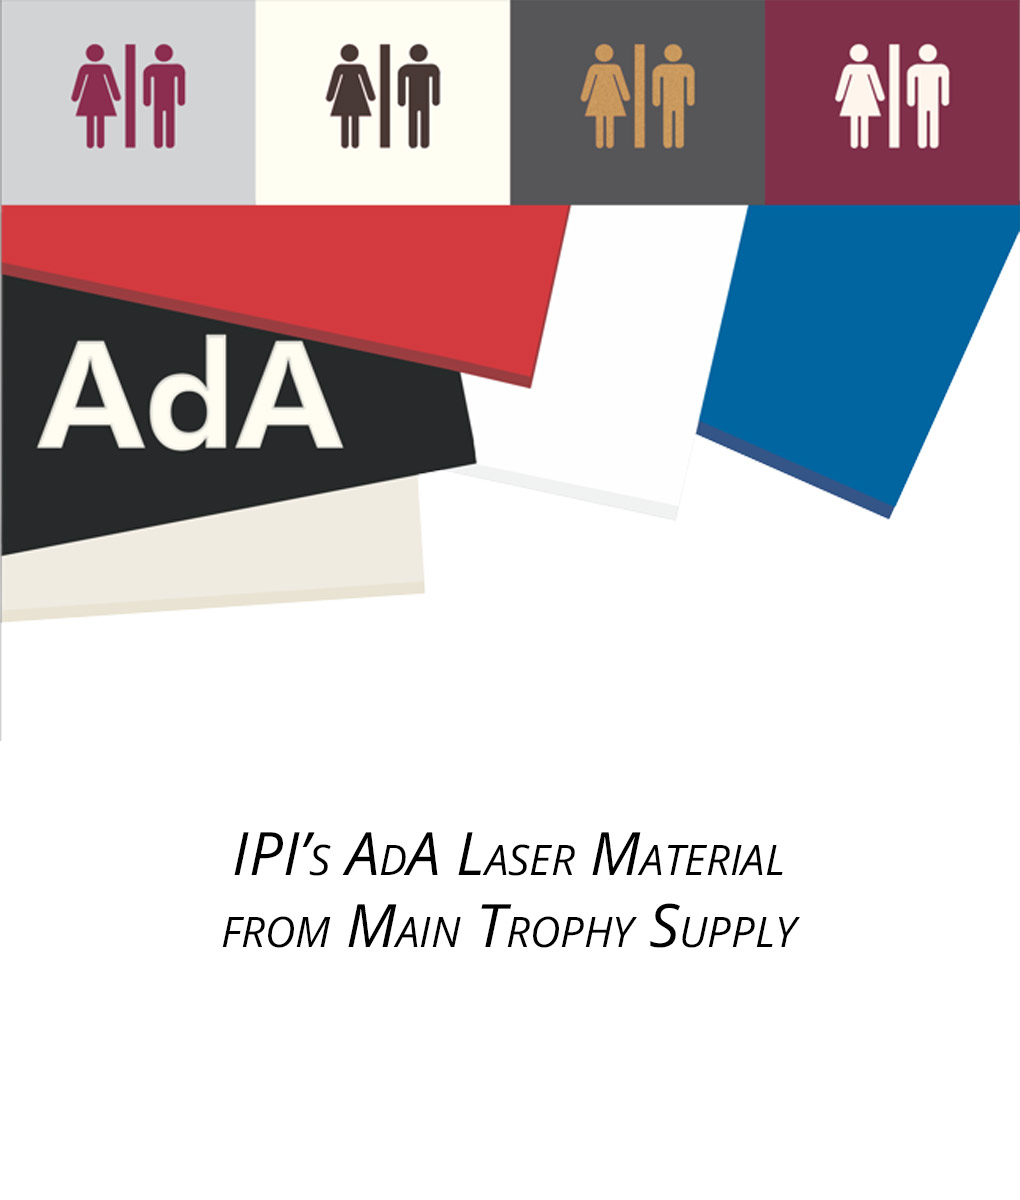 "Ipi Quote Ipi Laser Ada Matte Finish 116 & 132"" Thickness  Main Trophy Supply"